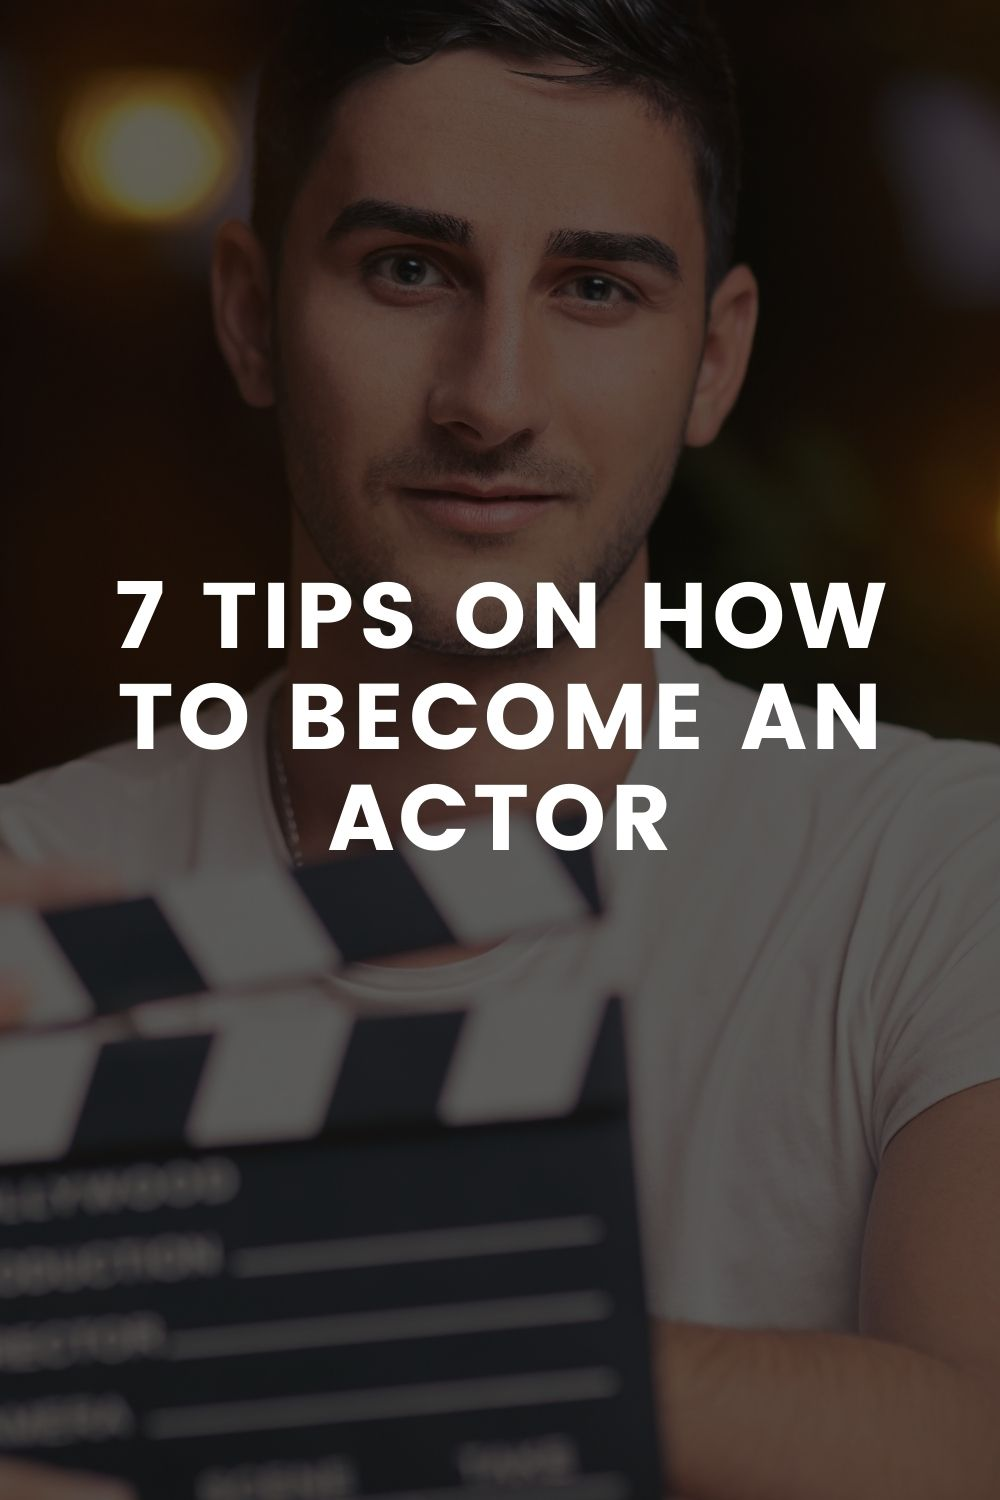 7 Tips On How To Become An Actor